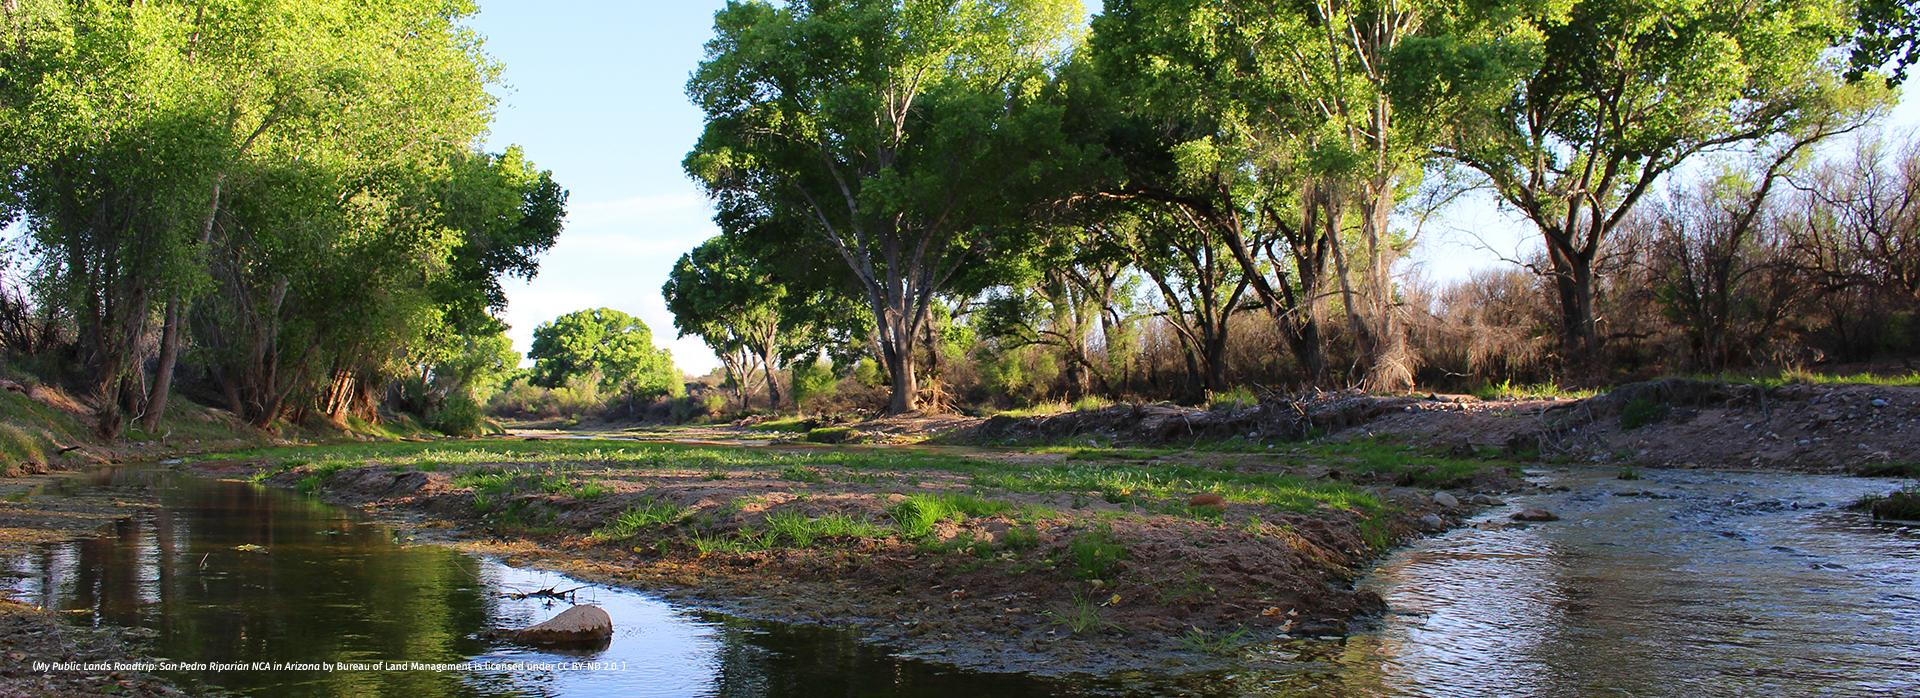 (My Public Lands Roadtrip: San Pedro Riparian NCA in Arizona by Bureau of Land Management is licensed under CC BY-ND 2.0. )